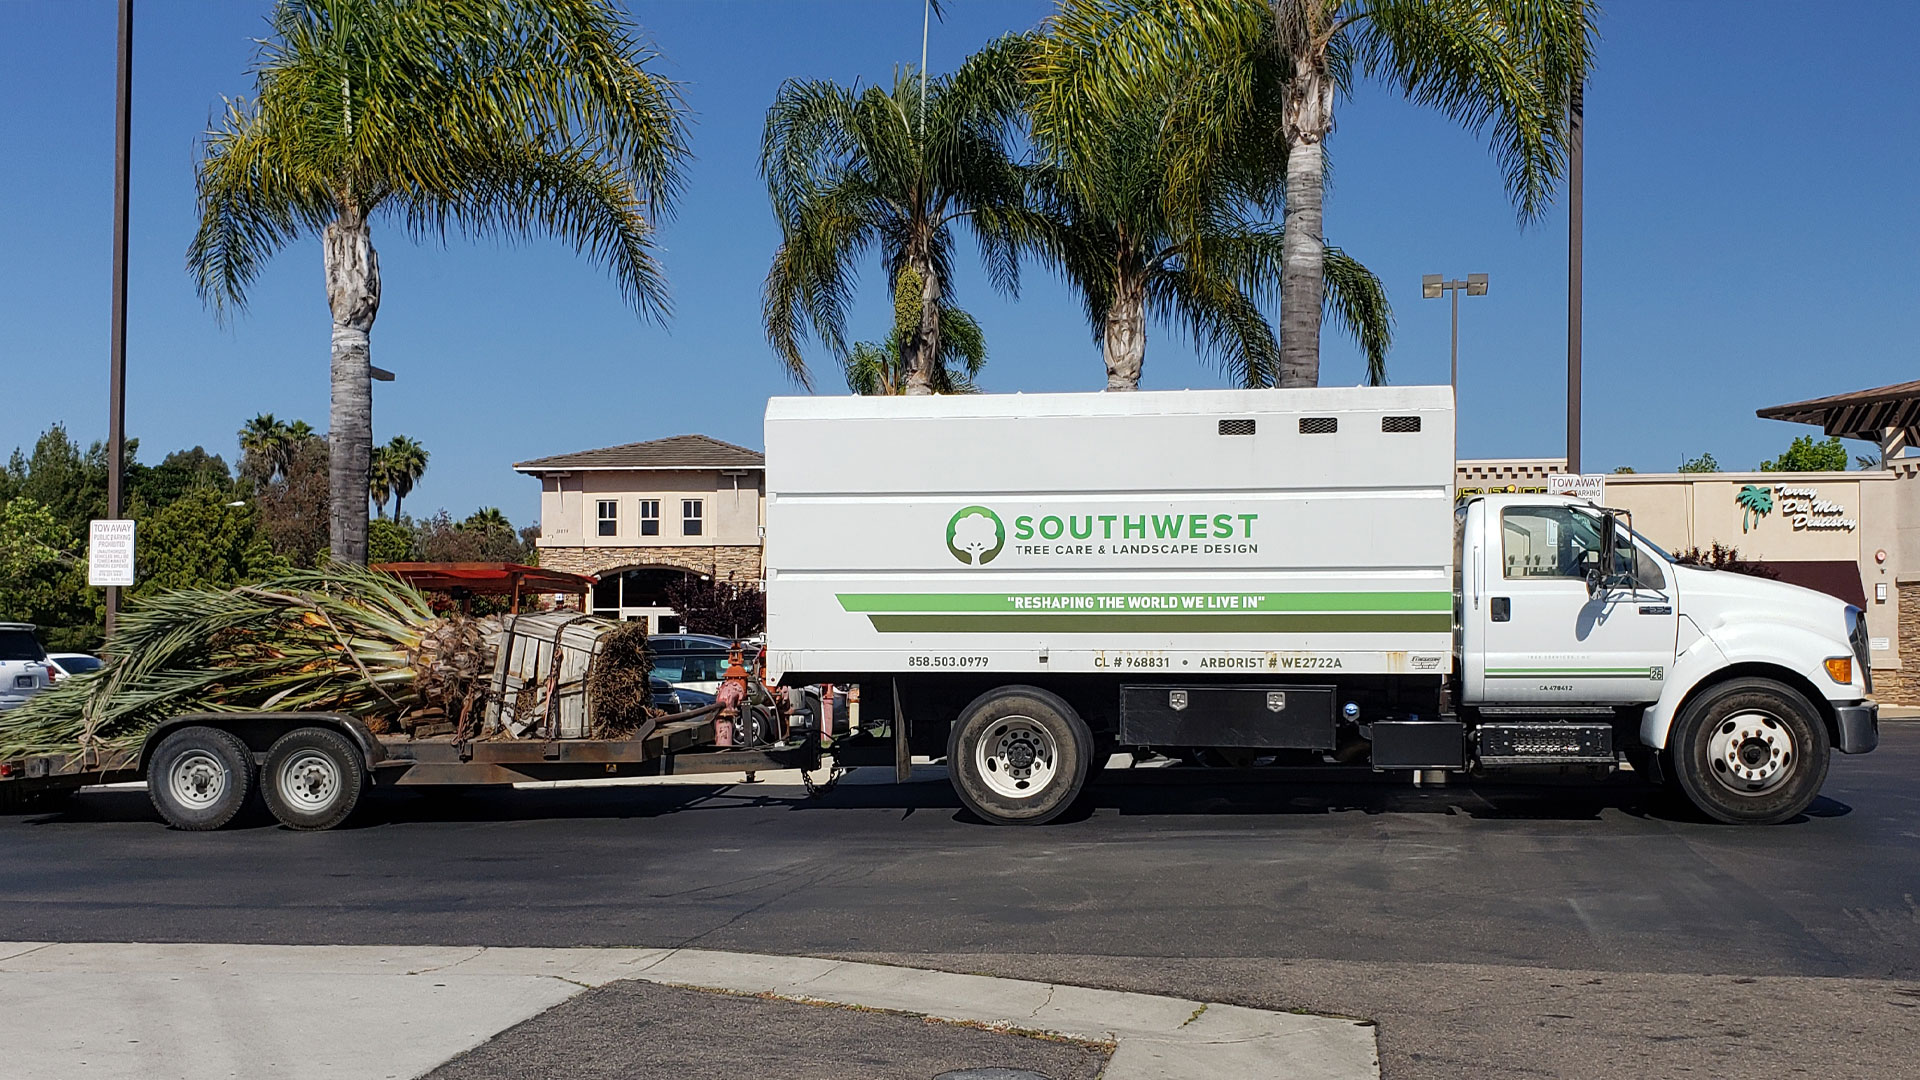 Work landscaping truck on a job site in Rancho Santa Fe.